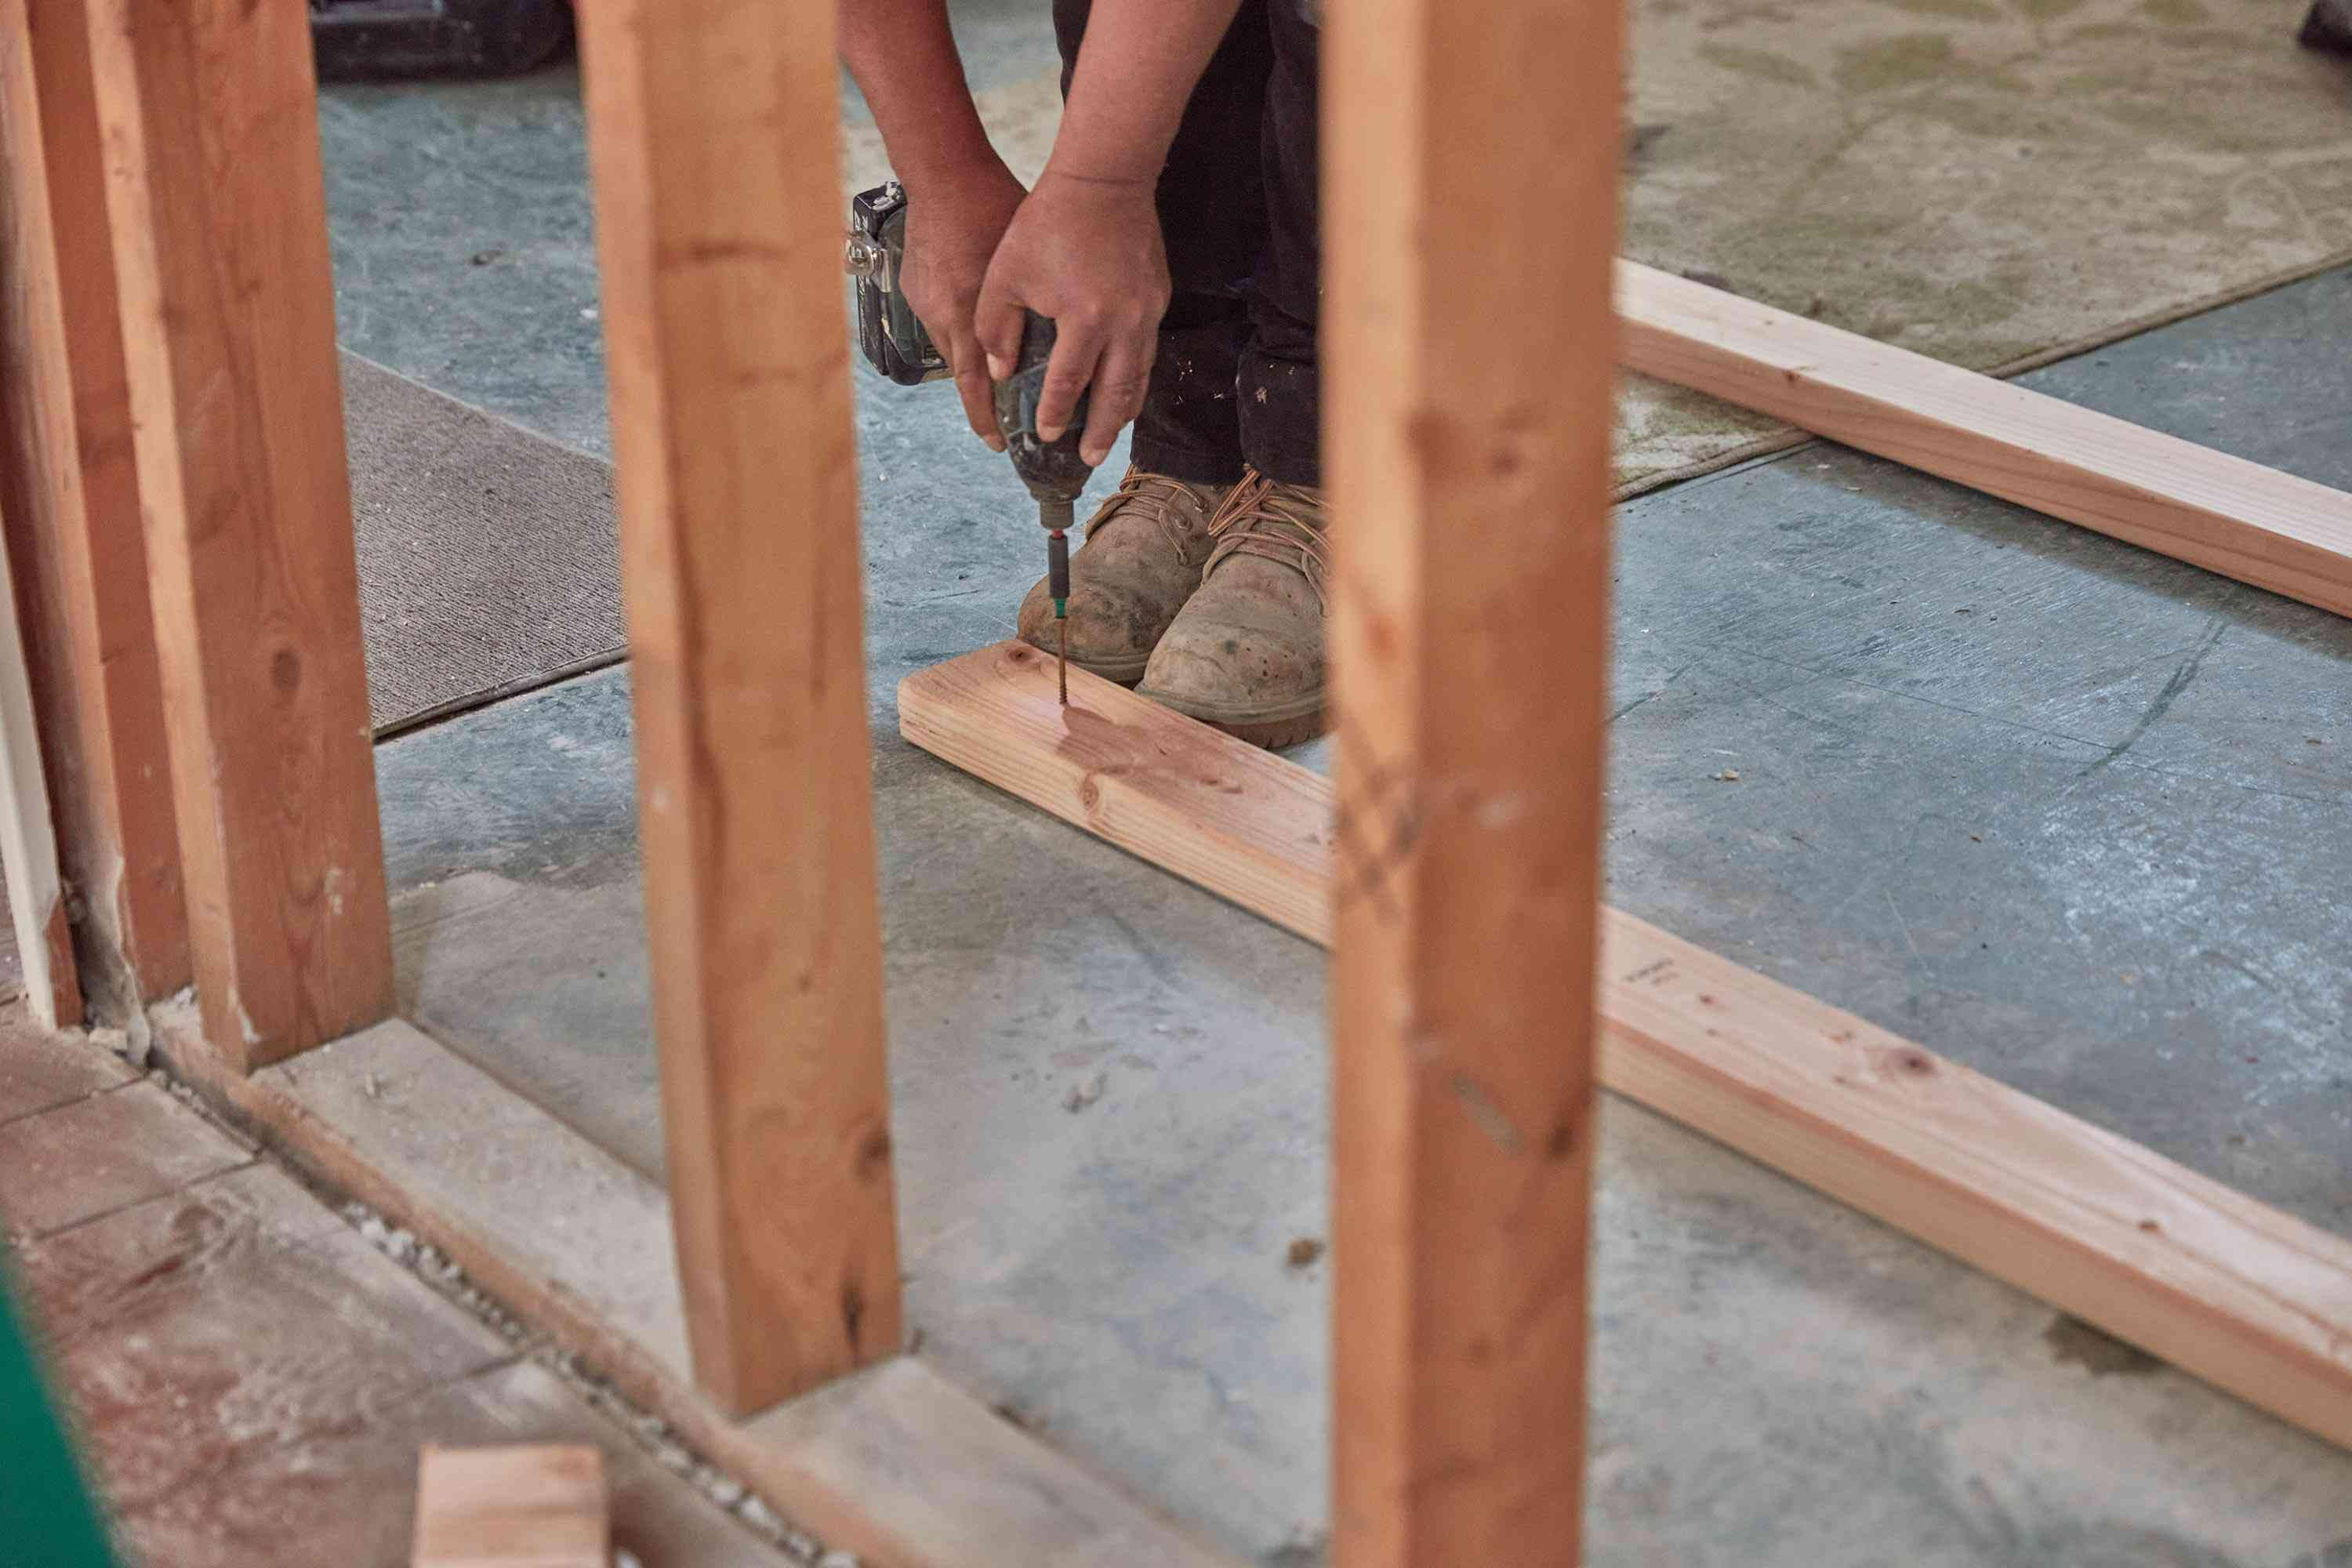 Wood studs being drilled on ground to add extra support for load bearing wall